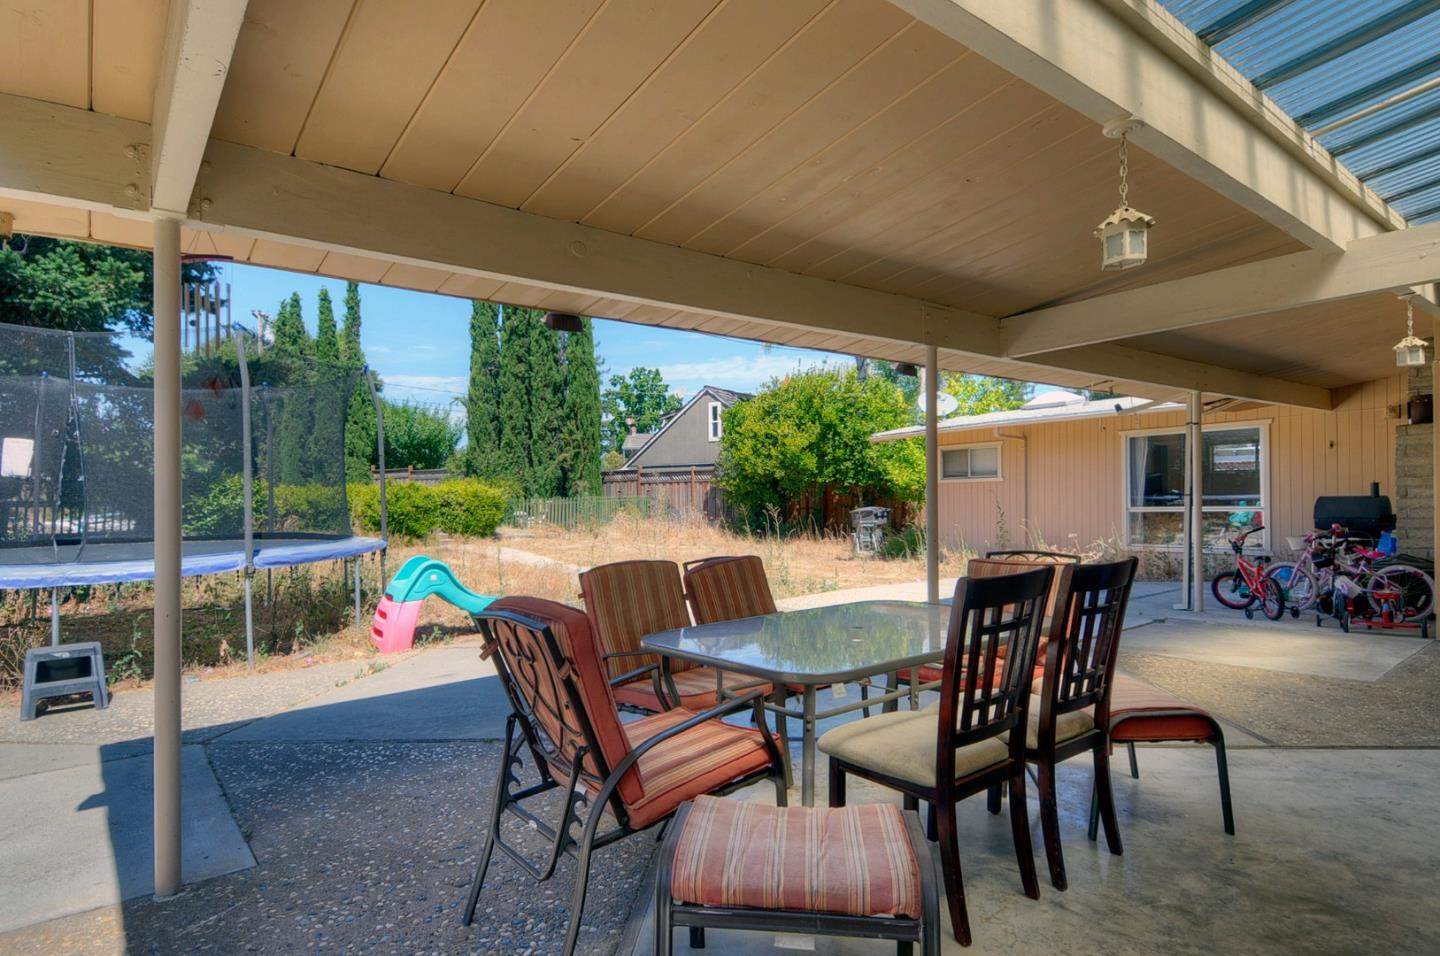 Additional photo for property listing at 115 Vallecitos Way  Los Gatos, California 95032 United States